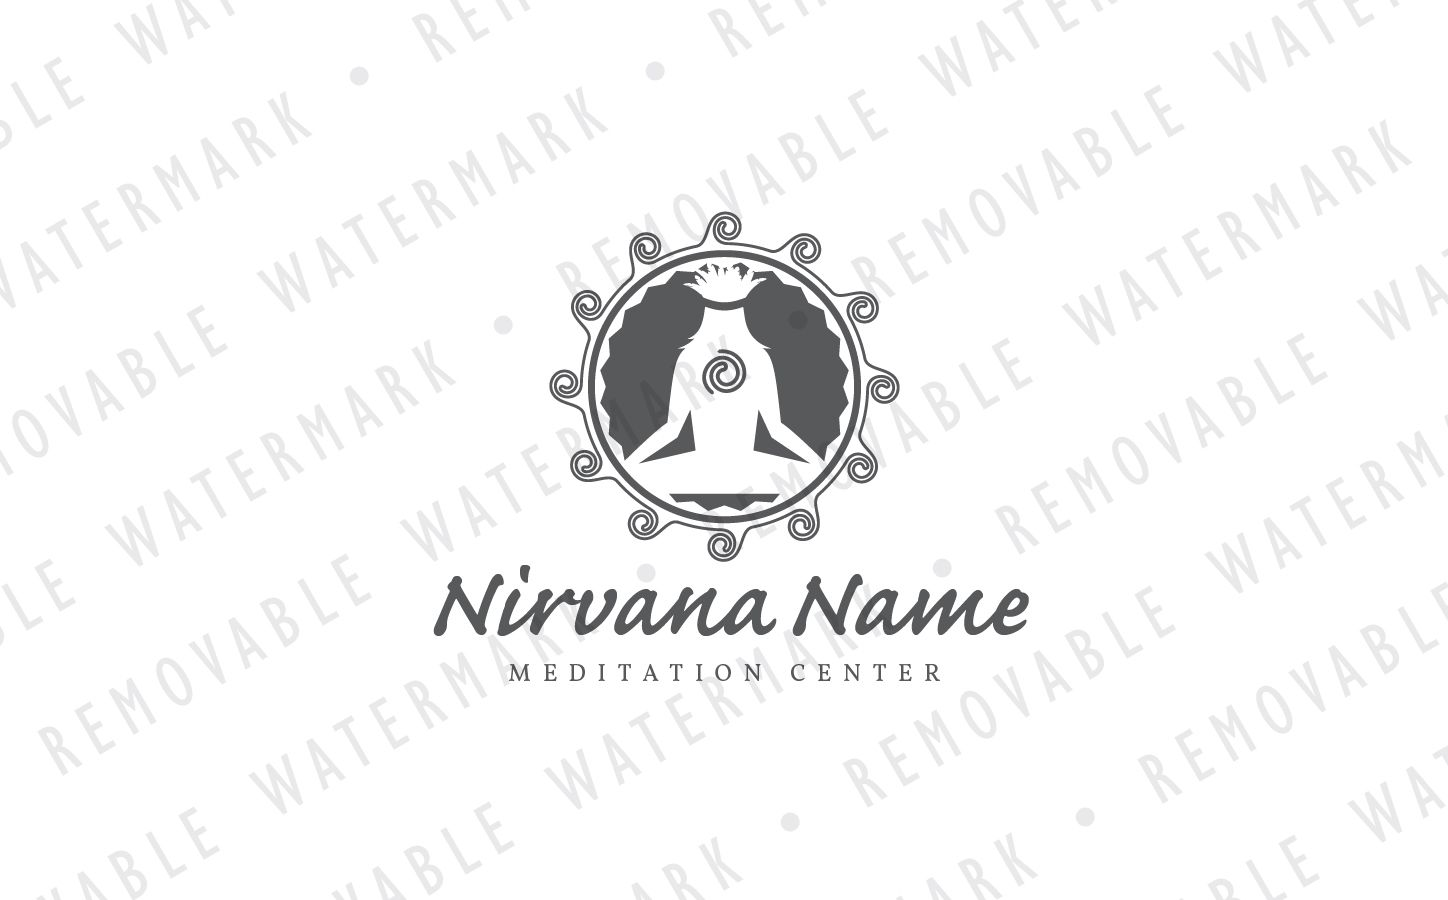 tribal meditation logo template 71237 logo templates templates tribal pinterest